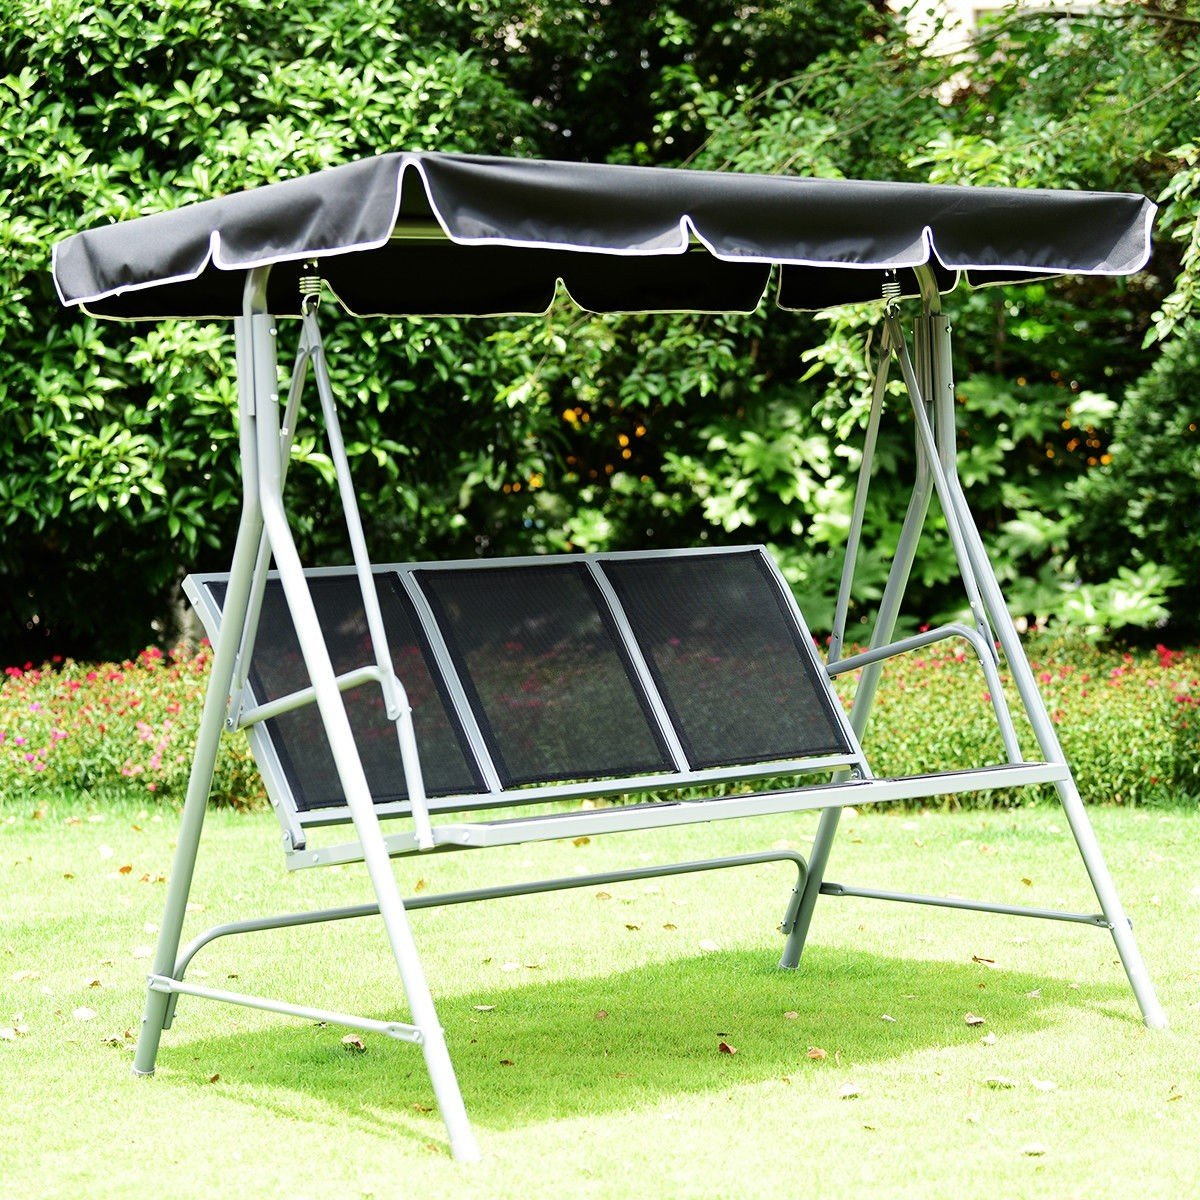 Dayanaprincess 3 Persons Patio Powder Finish Canopy Deck Swing Bench Heavy Duty Steel Construction Outside Chairs for Porch Garden Backyard Decor by Dayanaprincess (Image #2)